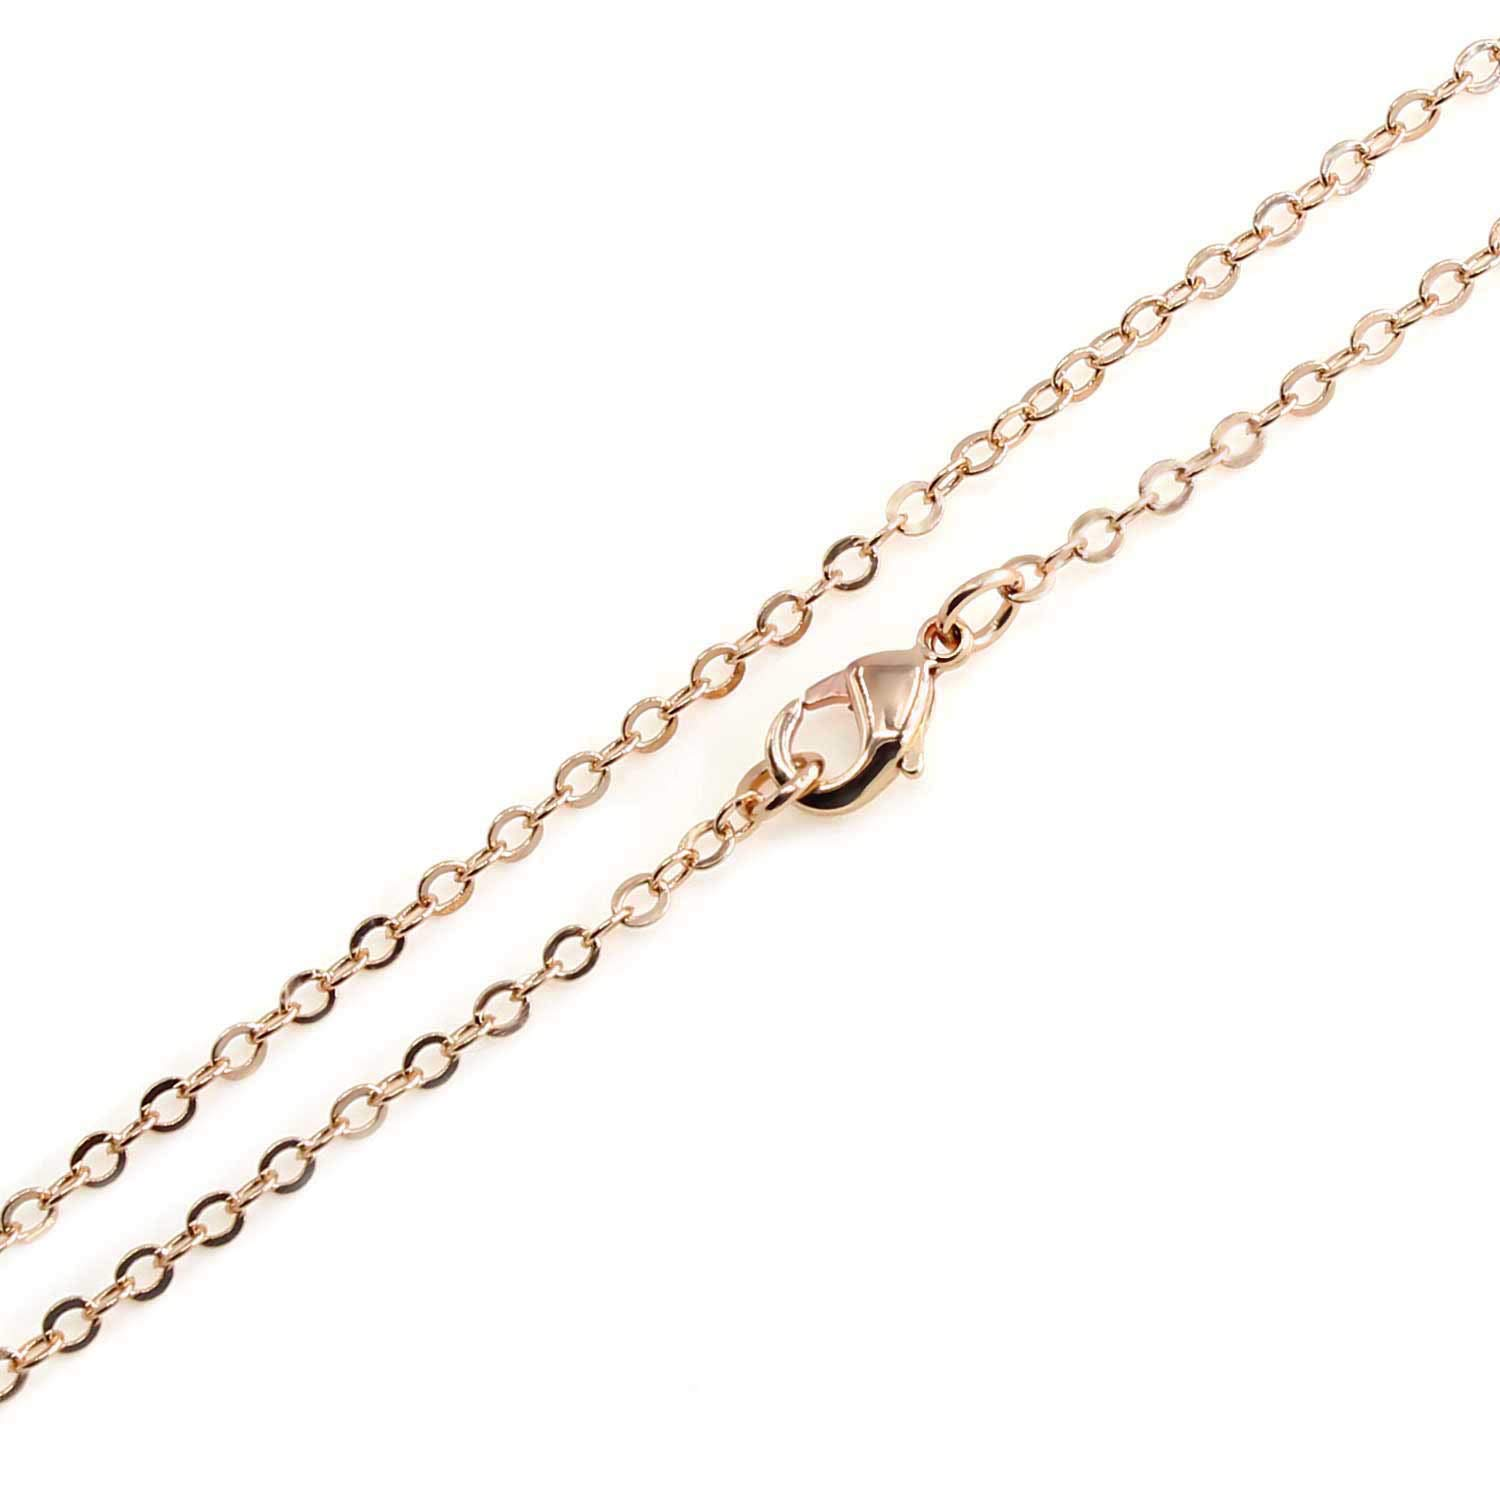 Wholesale 12PCS Rose Gold Plated Solid Brass Flat Cable Chains Bulk Fine Chain for Jewelry Making 18-30 Inches (18(1.5MM)) ALEXCRAFT 4336832471